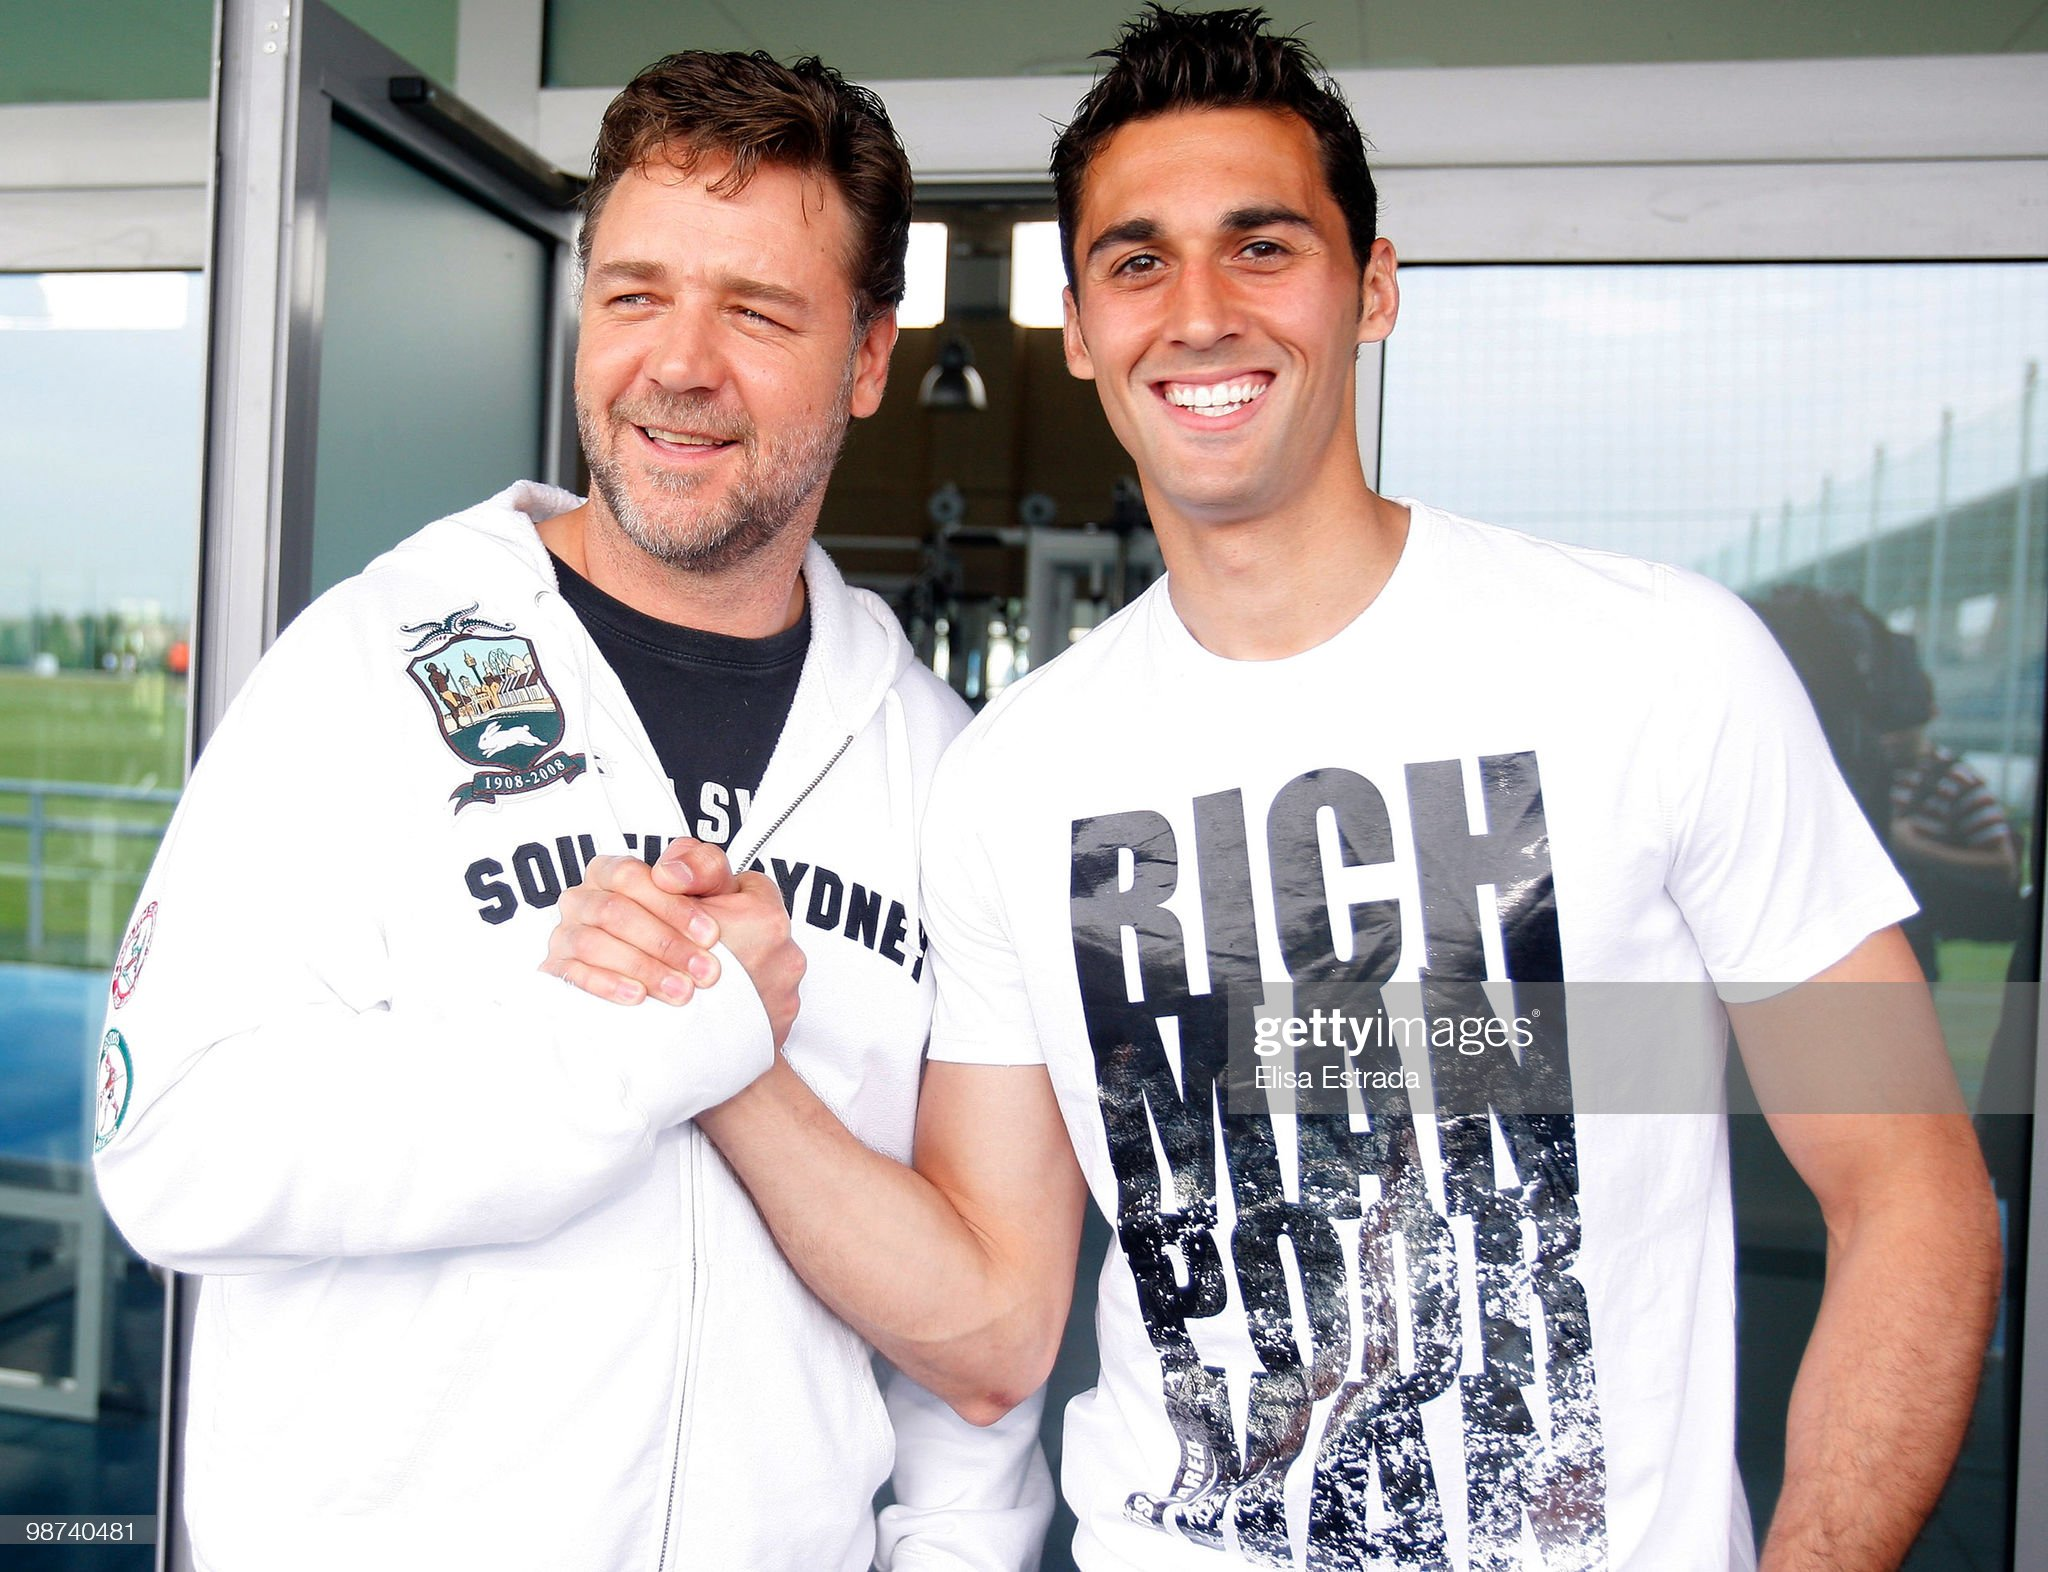 ¿Cuánto mide Álvaro Arbeloa? - Altura Actor-russell-crowe-poses-with-alvaro-arbeloa-of-real-madrid-during-a-picture-id98740481?s=2048x2048